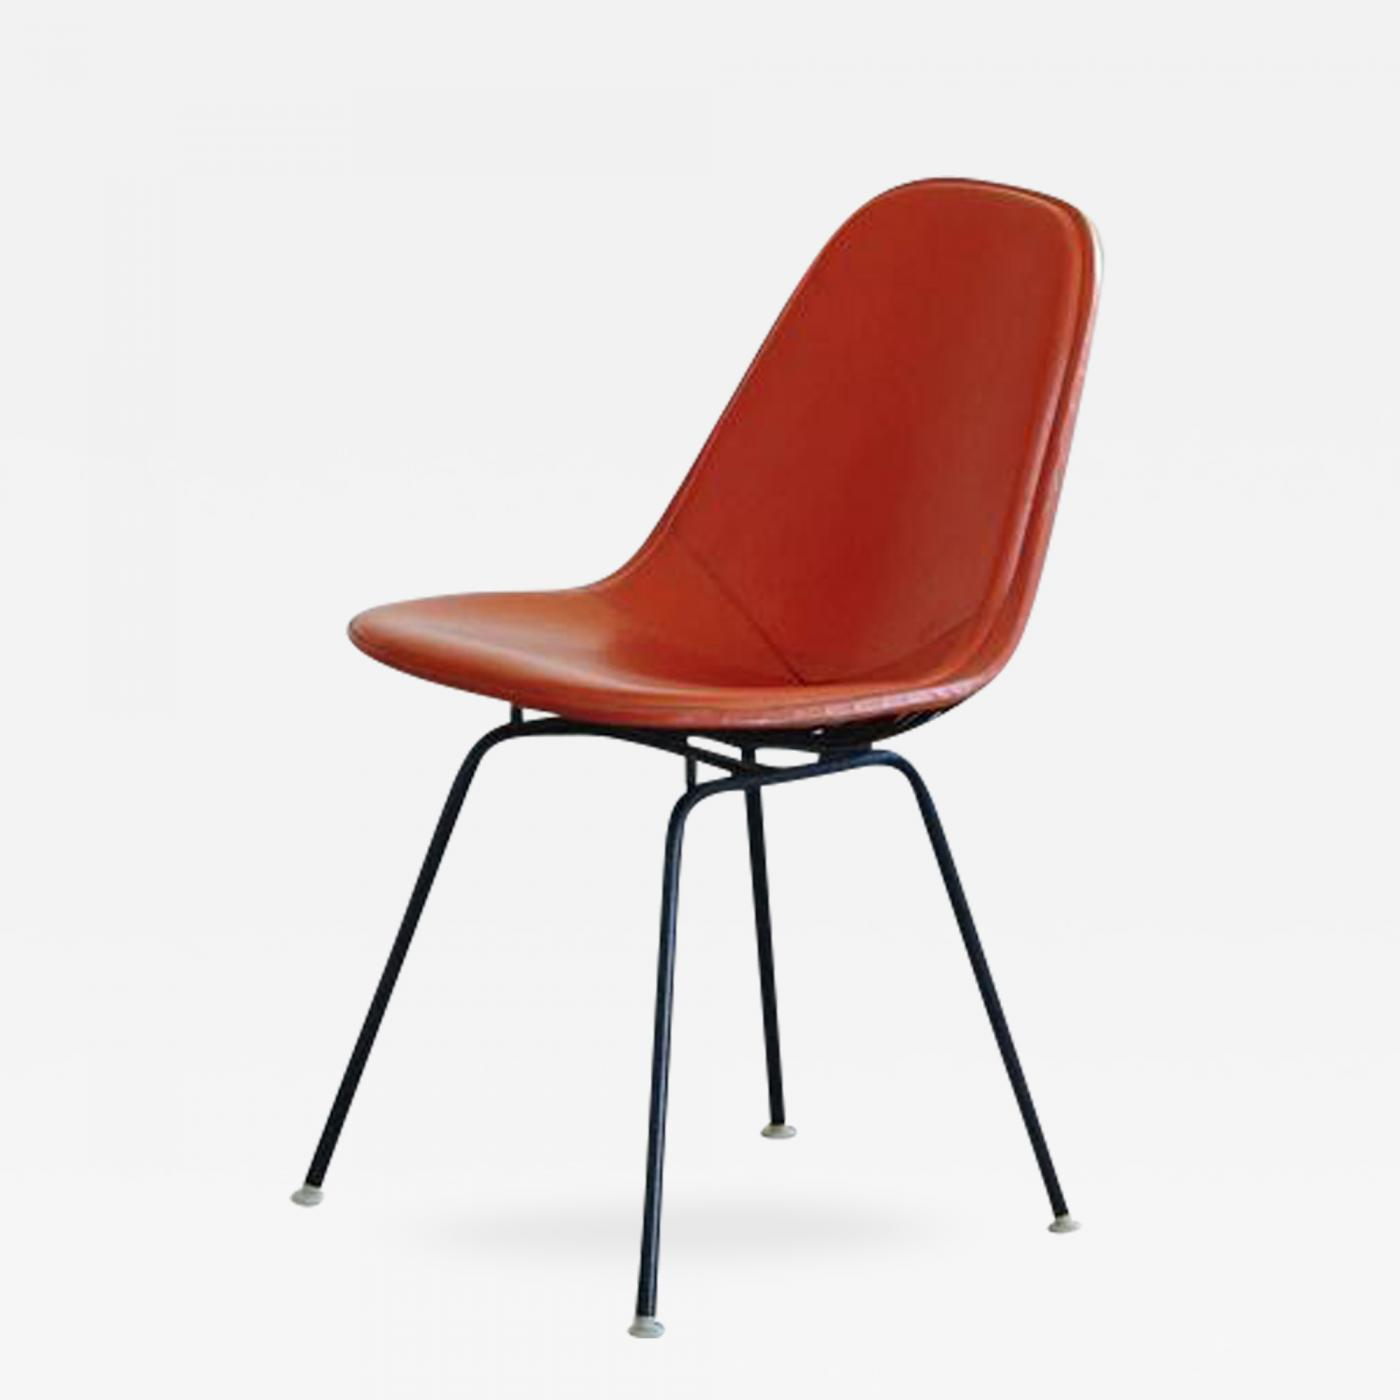 Eames Stuhl Original Charles And Ray Eames Original Eames Dkx 1 Side Chair In Orange Leather For Herman Miller 1960s